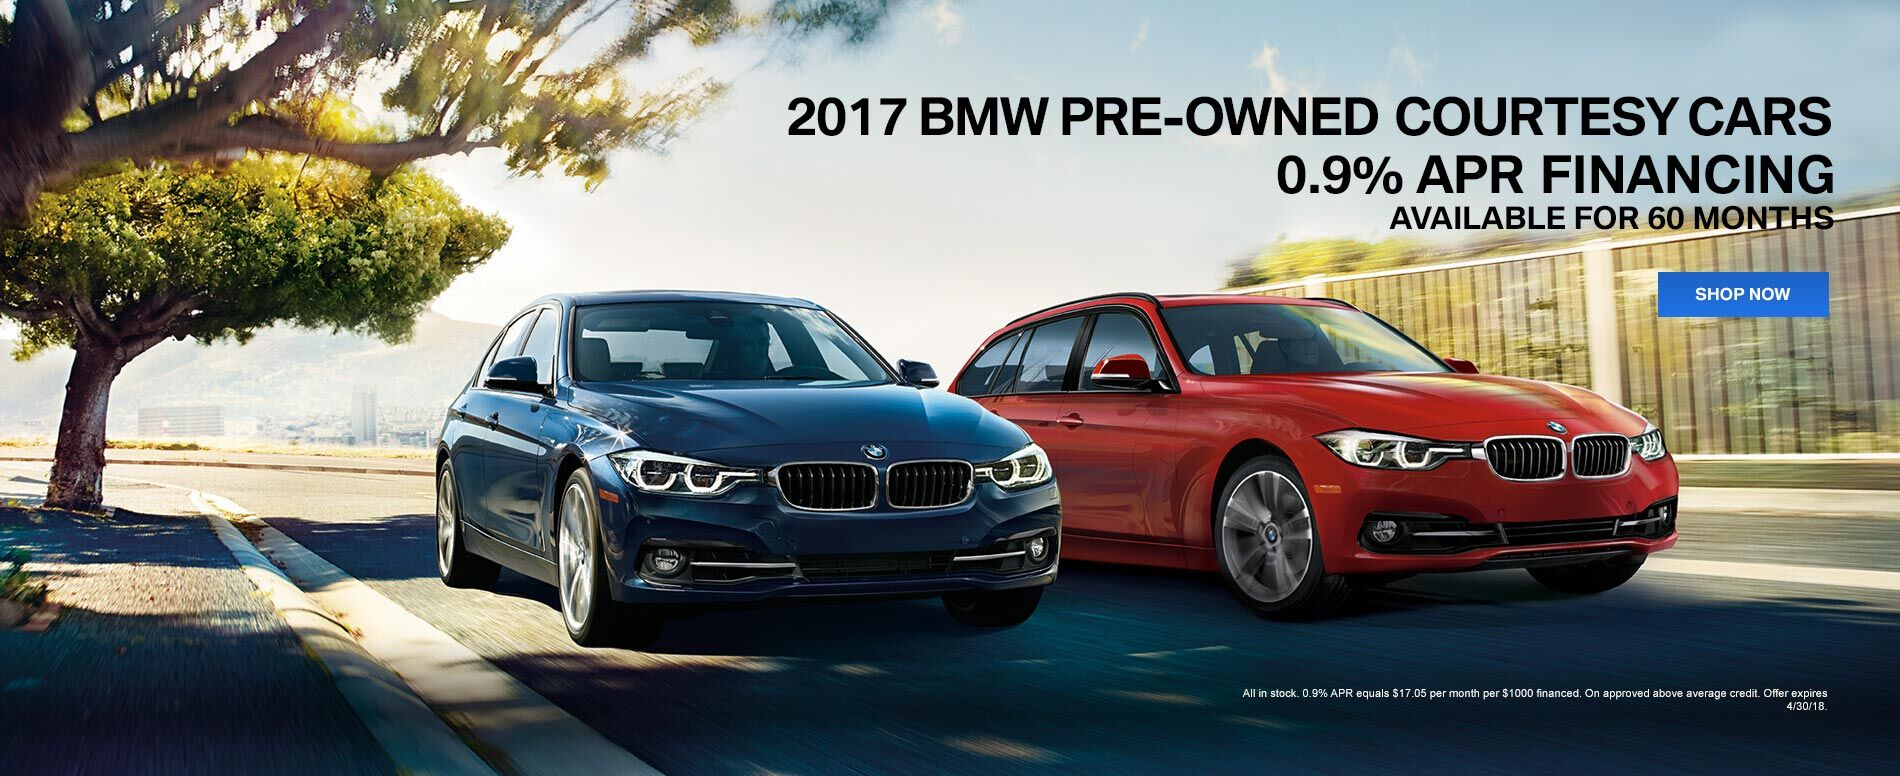 2017 BMW Pre-owned Courtesy Cars